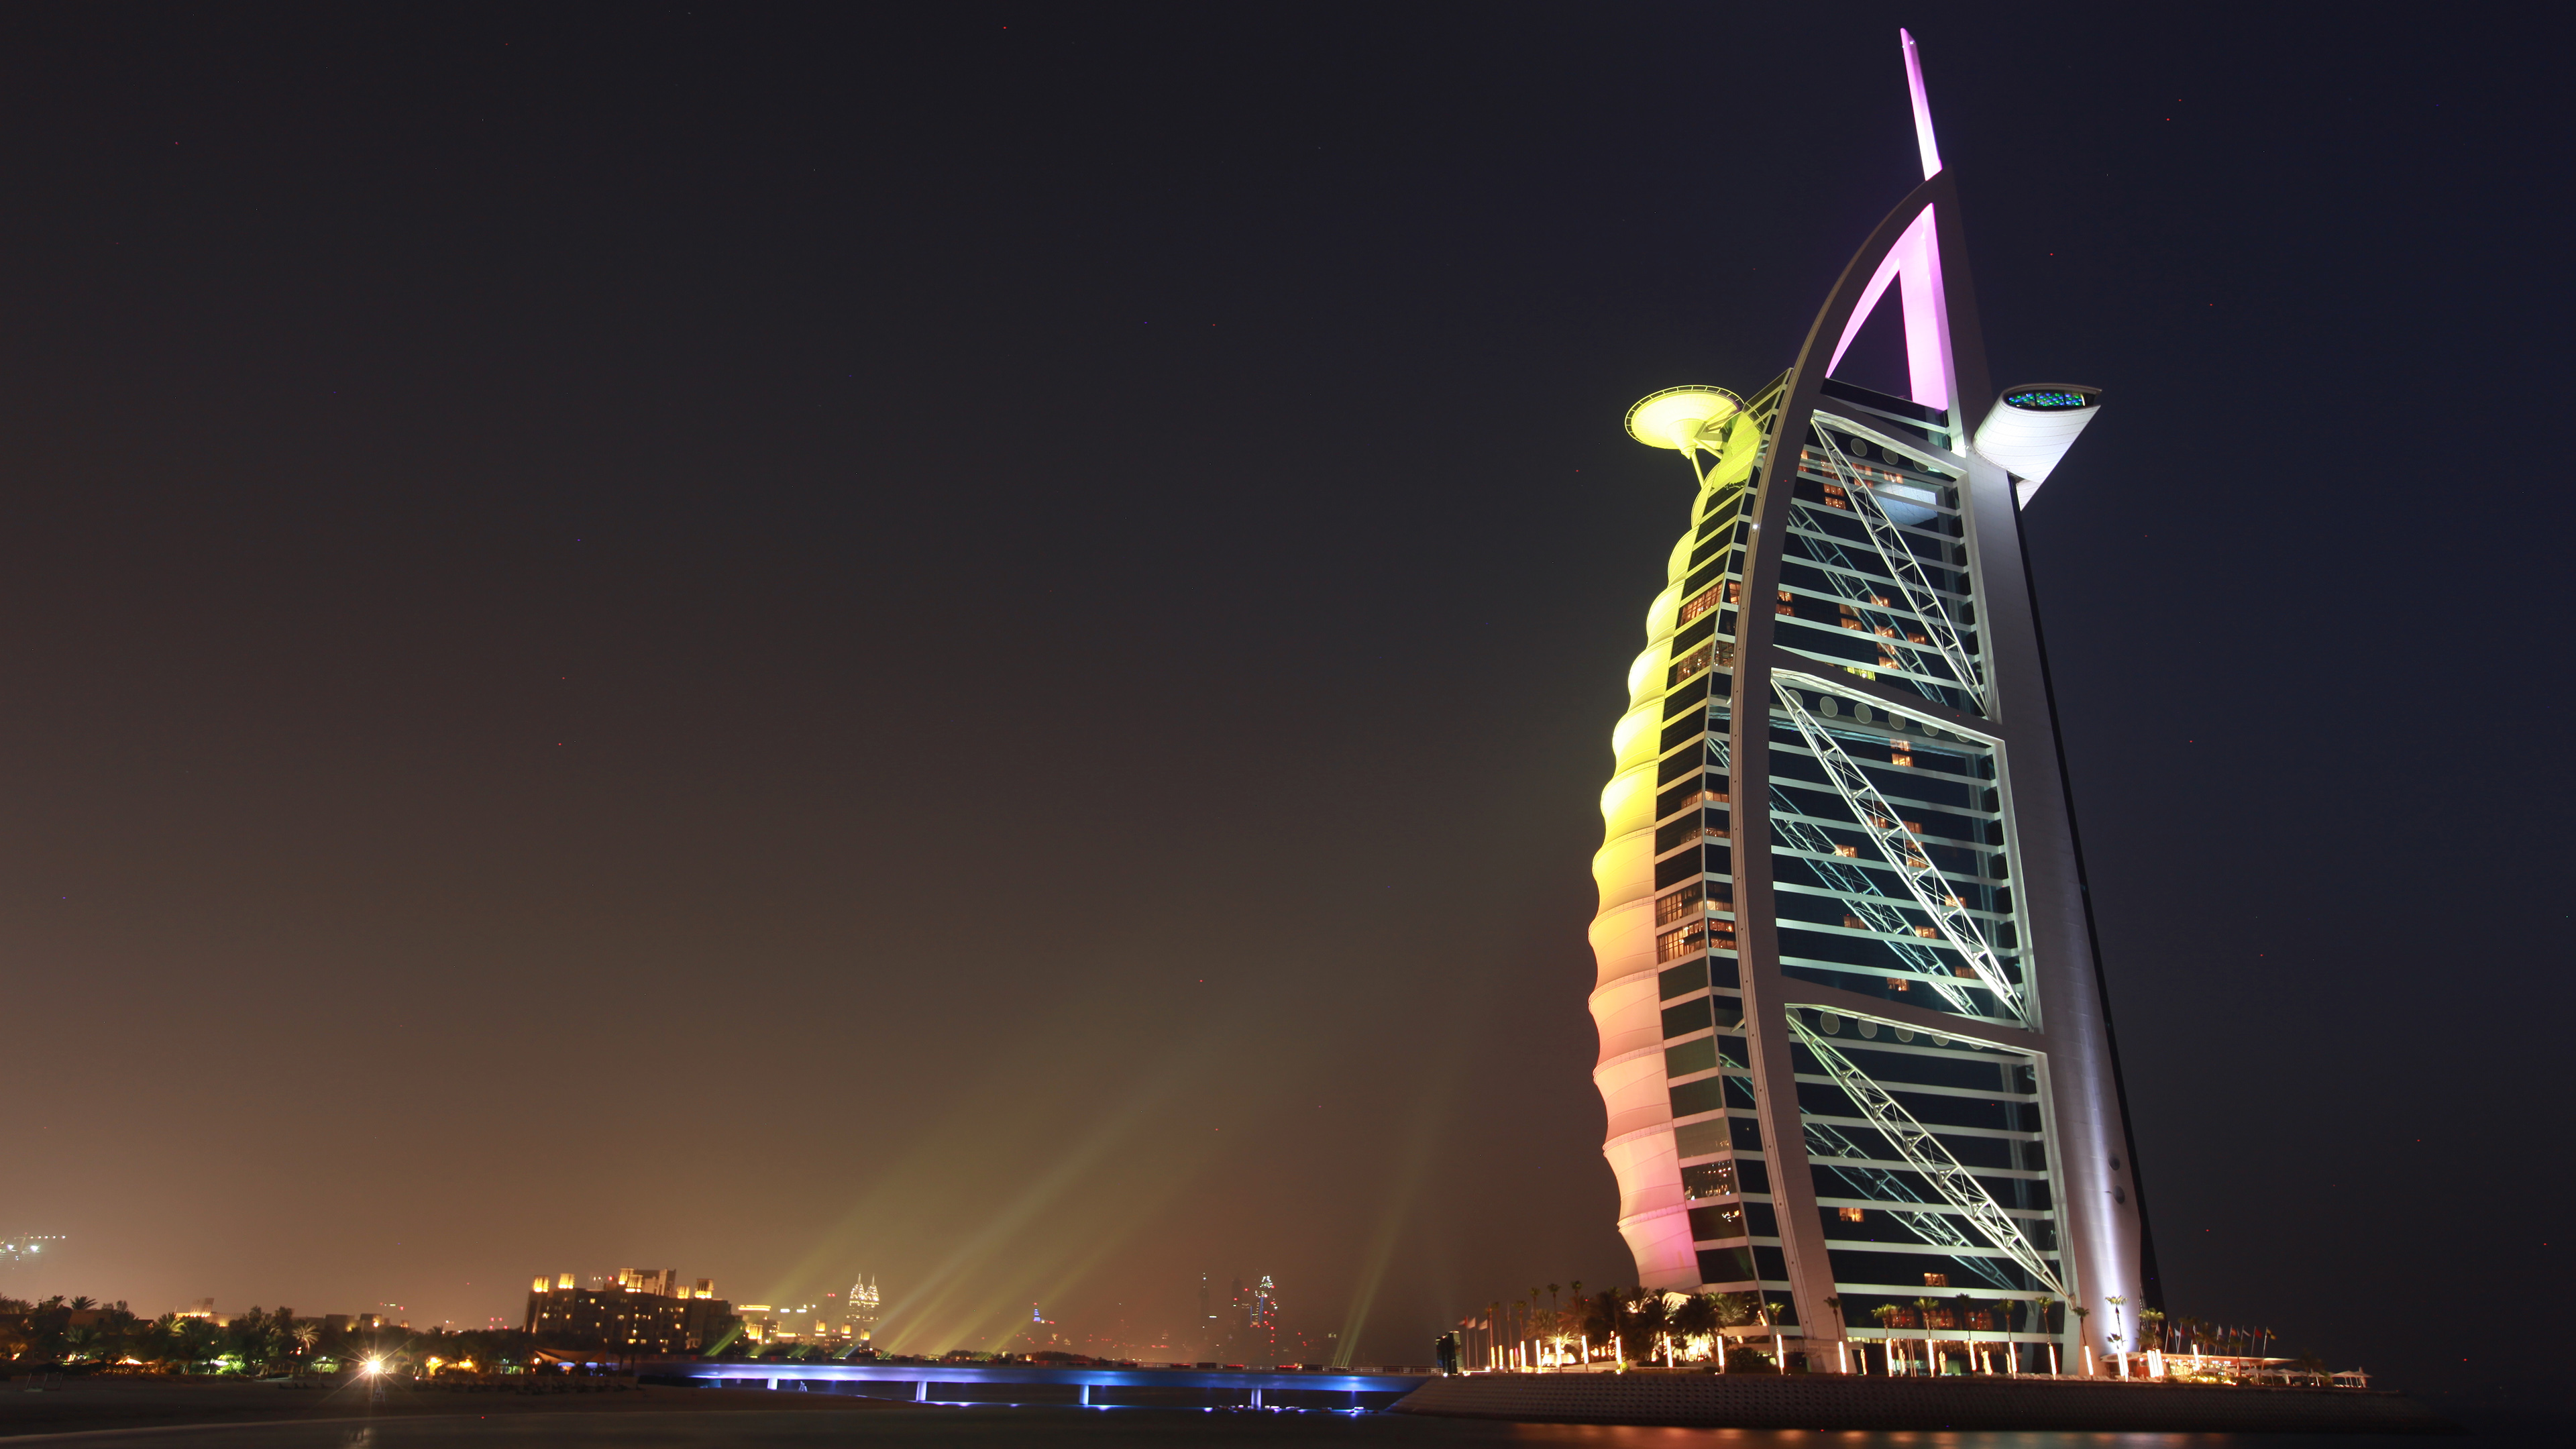 28 burj al arab hd wallpapers | background images - wallpaper abyss